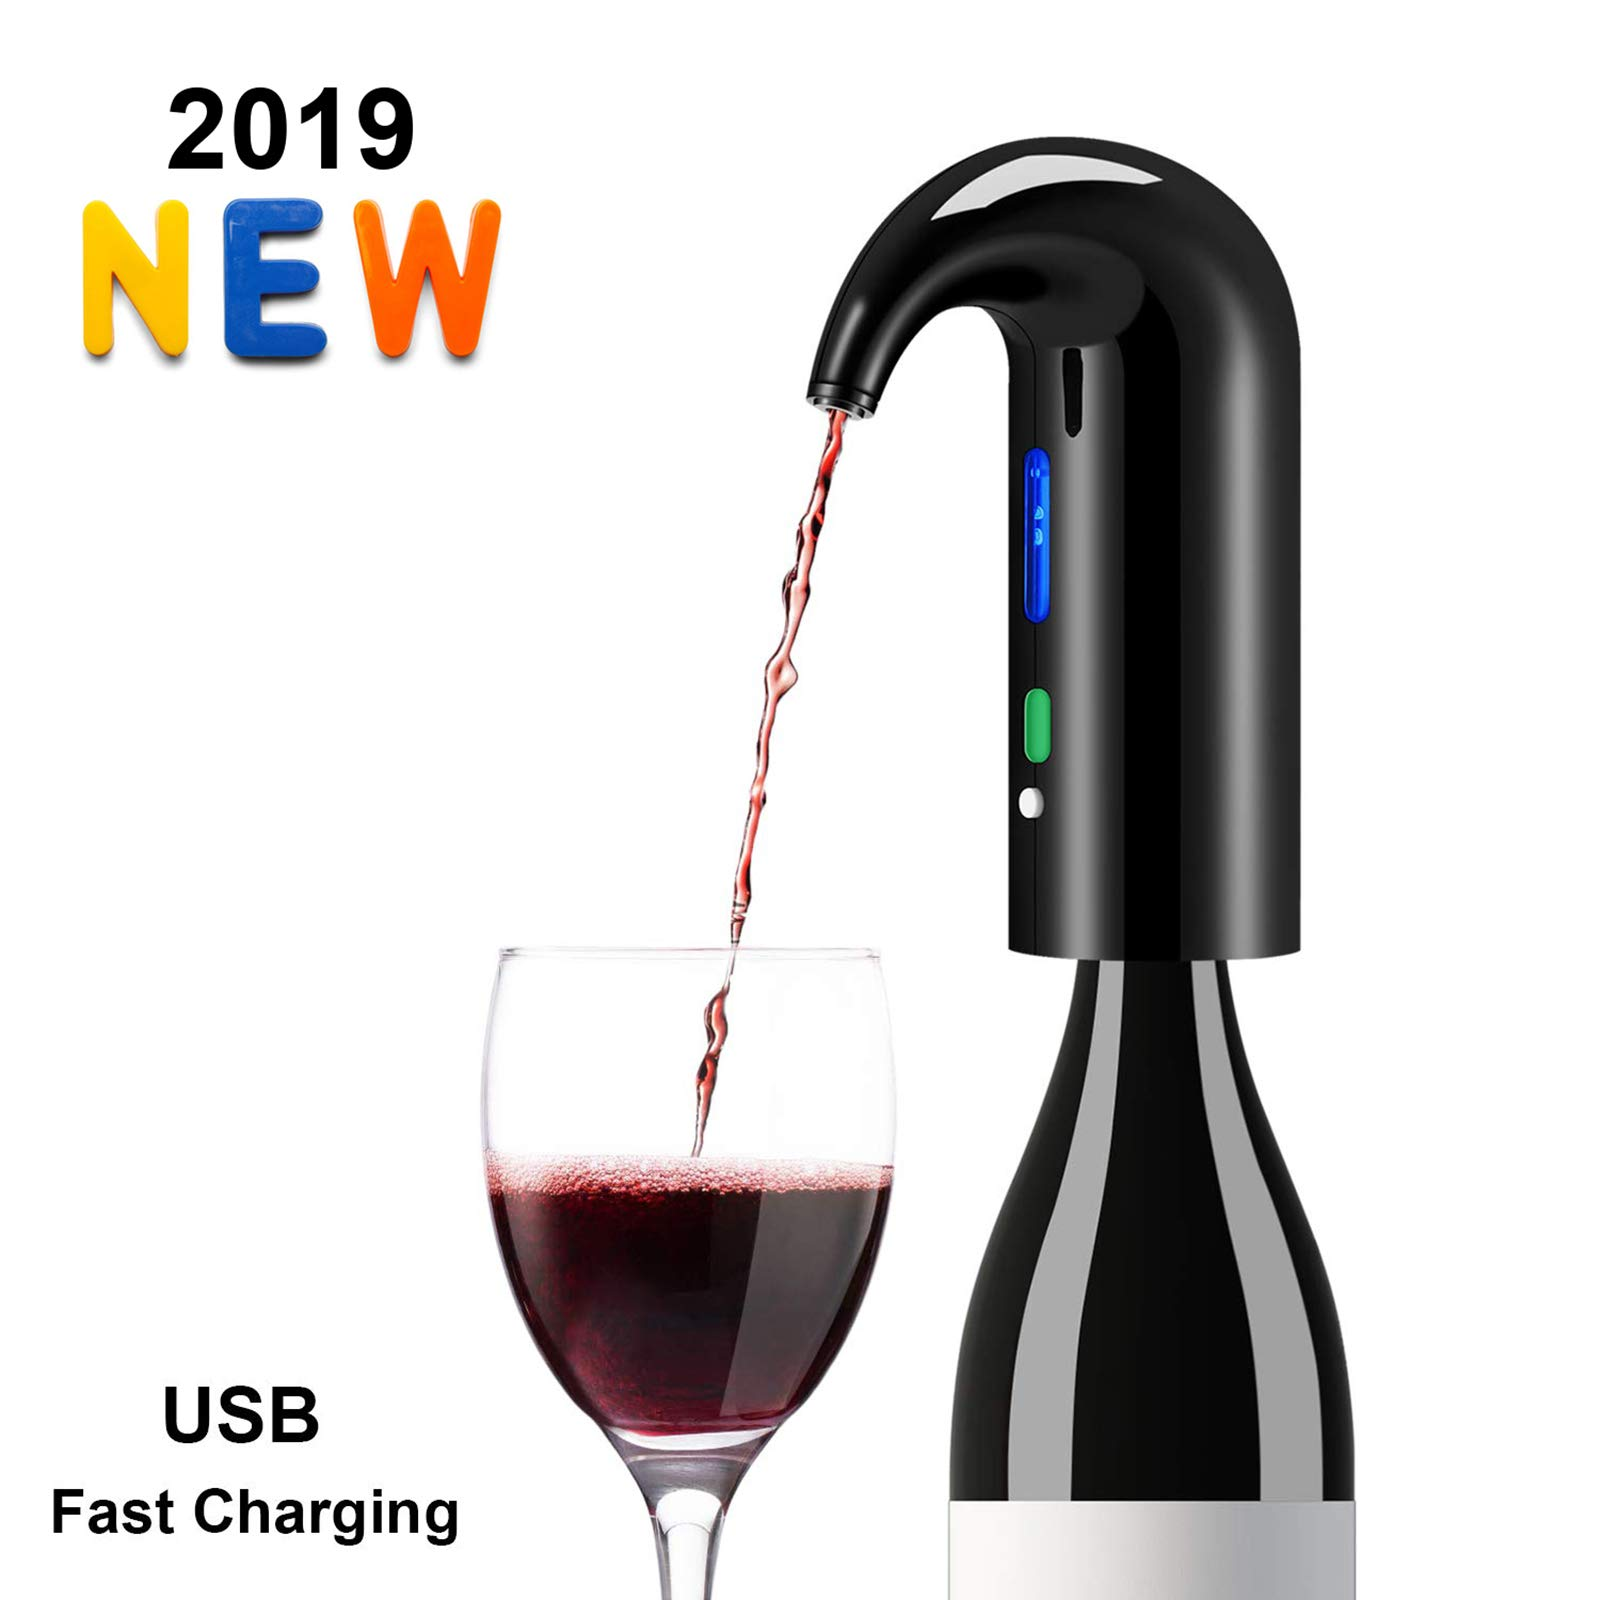 Wine Aerator Electric Wine Opener - Wine Openers Best Sellers One Touch Portable Red - White Wine Accessories Aeration For Wine and Spirit Beginner and Enthusiast -Spout Pourer - wine preserver